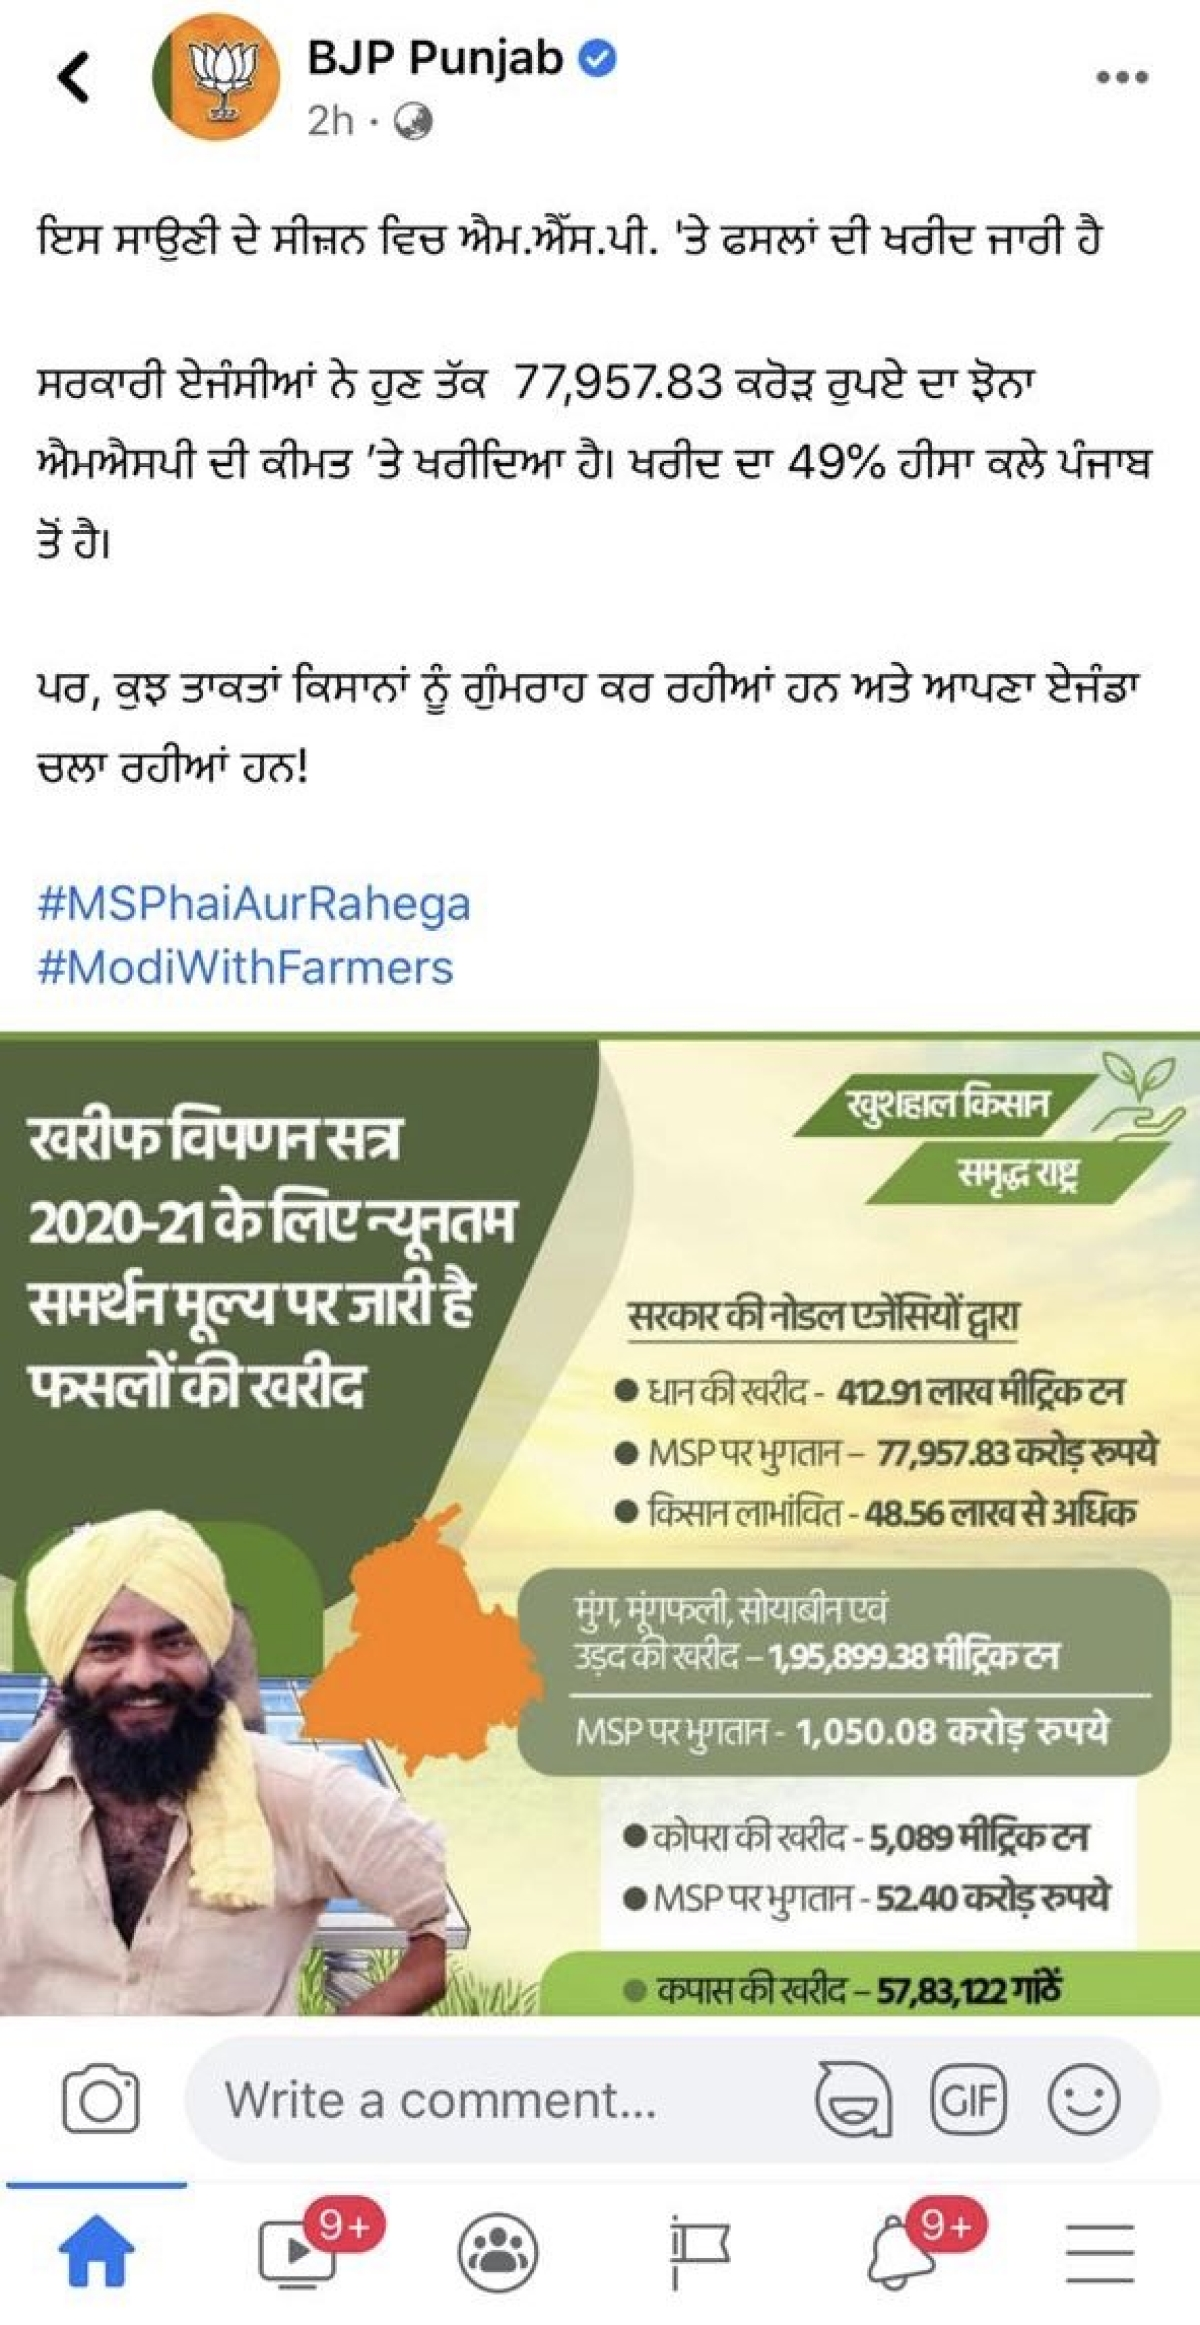 The pro-farm laws post by BJP Punjab on Facebook